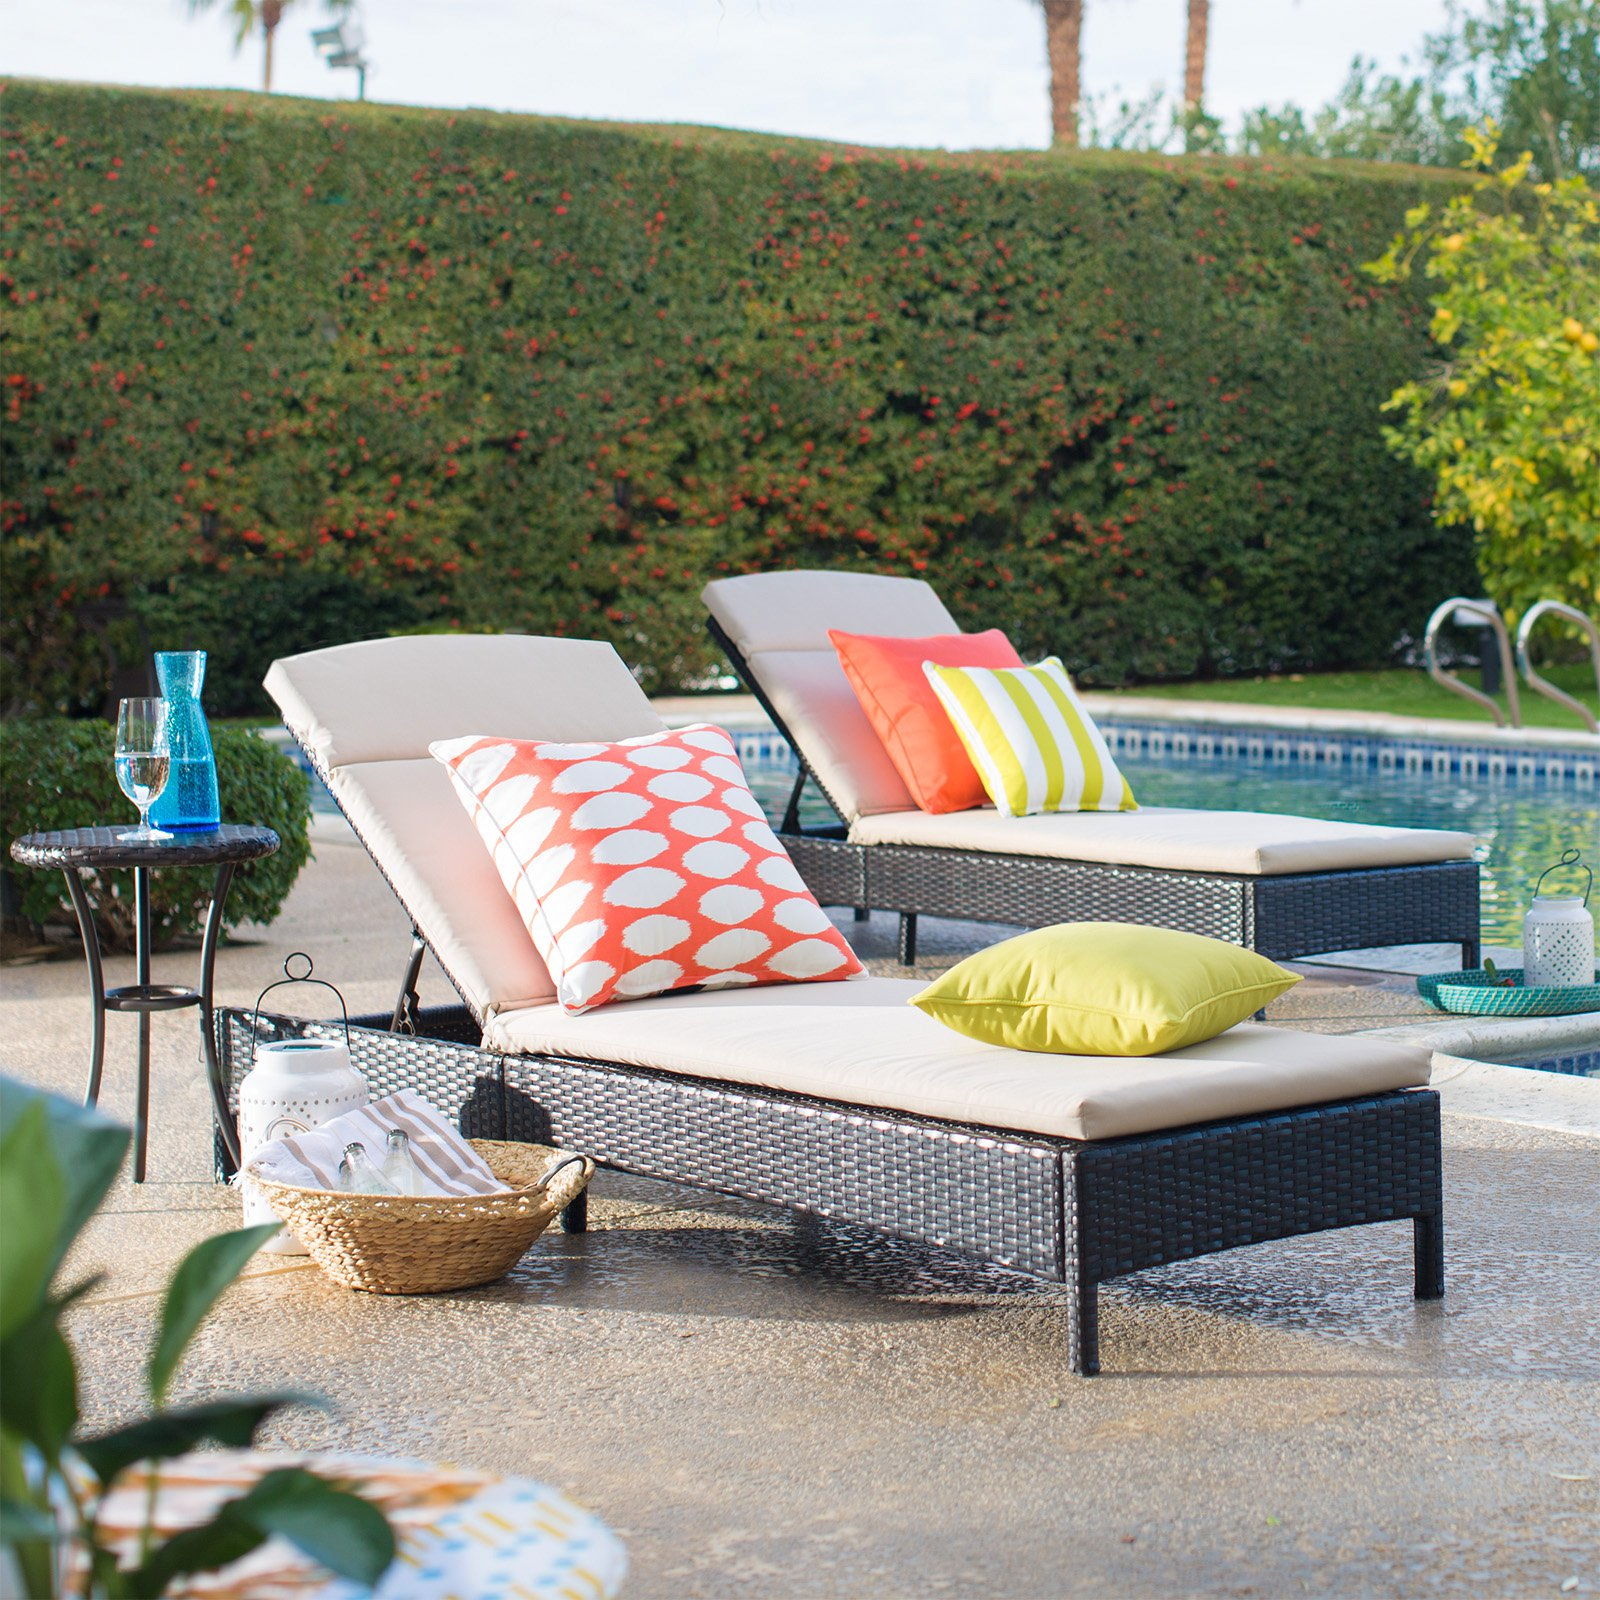 Coral Coast Berea All Weather Wicker Chaise Lounges with Side Table - 3 Piece Set